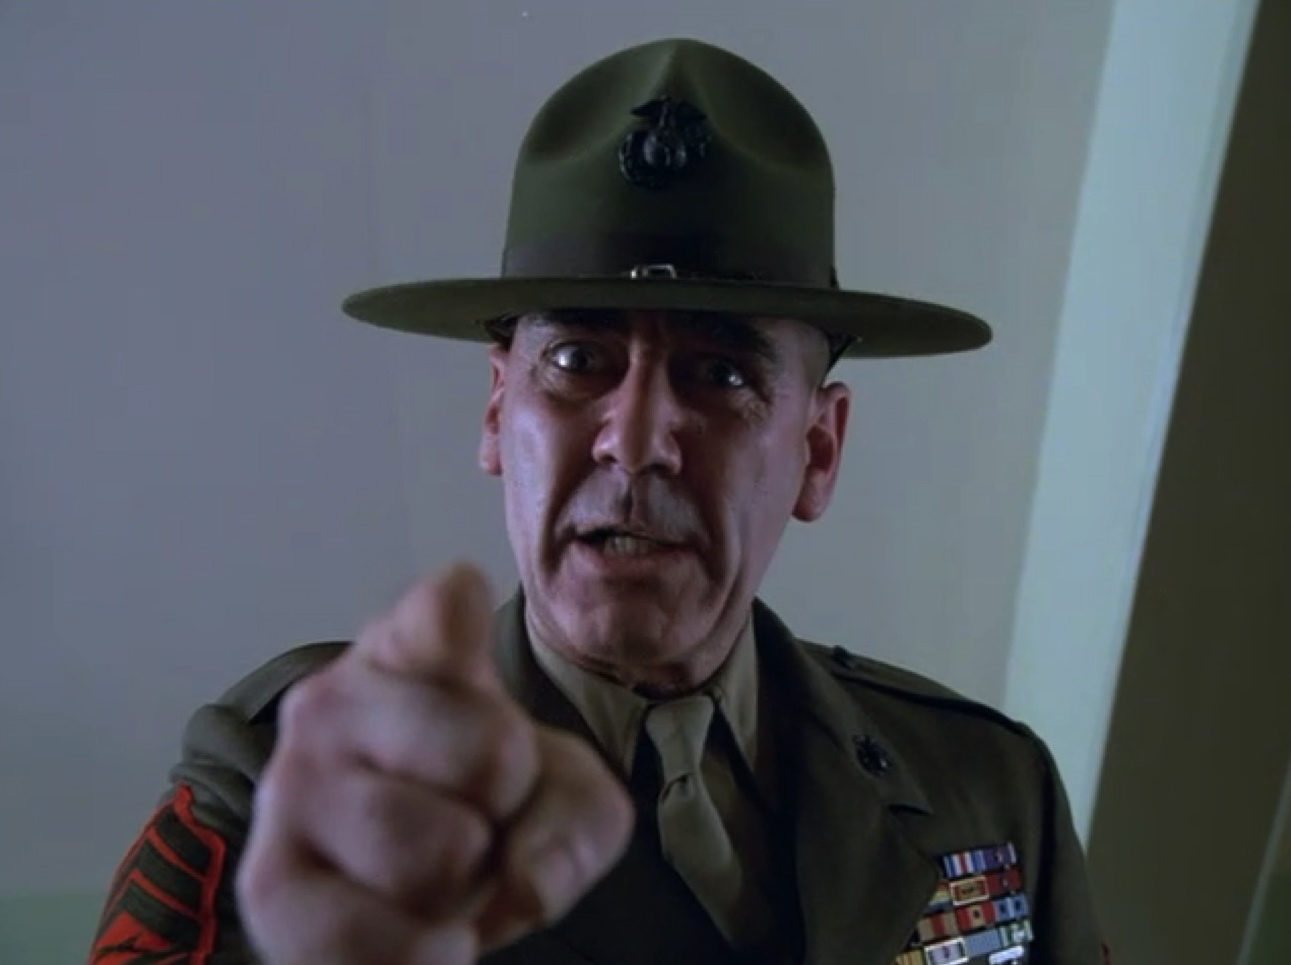 Full Metal Jacket Foul Mouthed Memories From Sgt Hartman R Lee Ermey S...